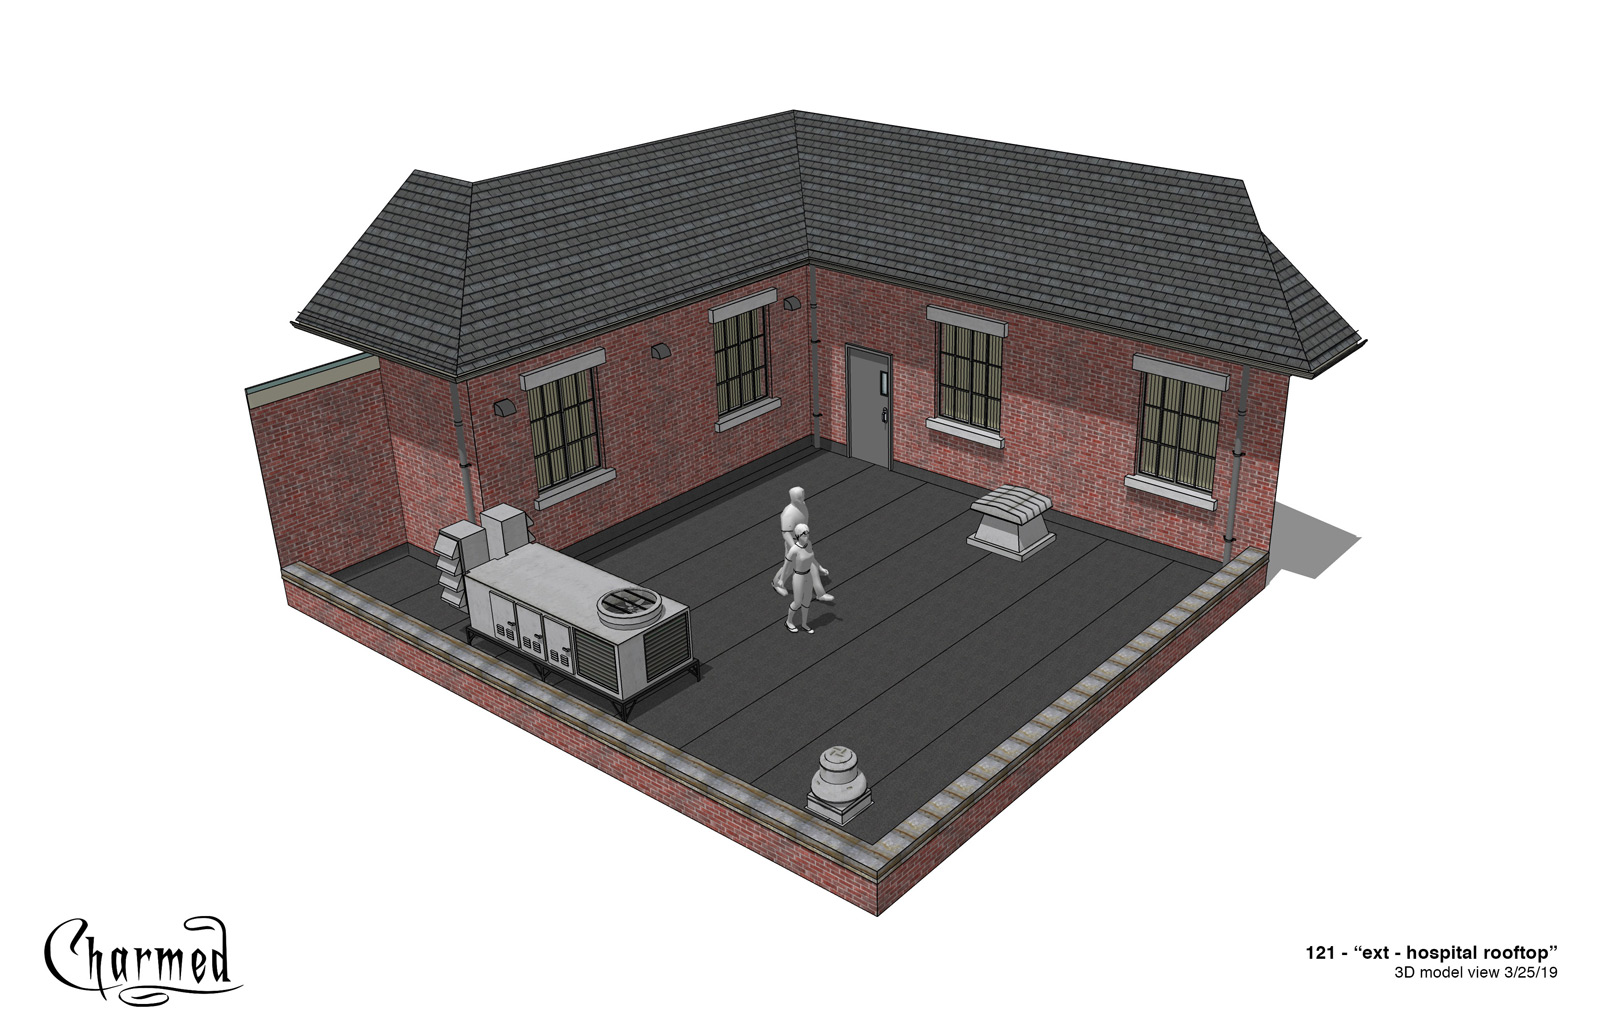 CHARMED: S1 - HOSPITAL ROOFTOP - 3D MODEL VIEW